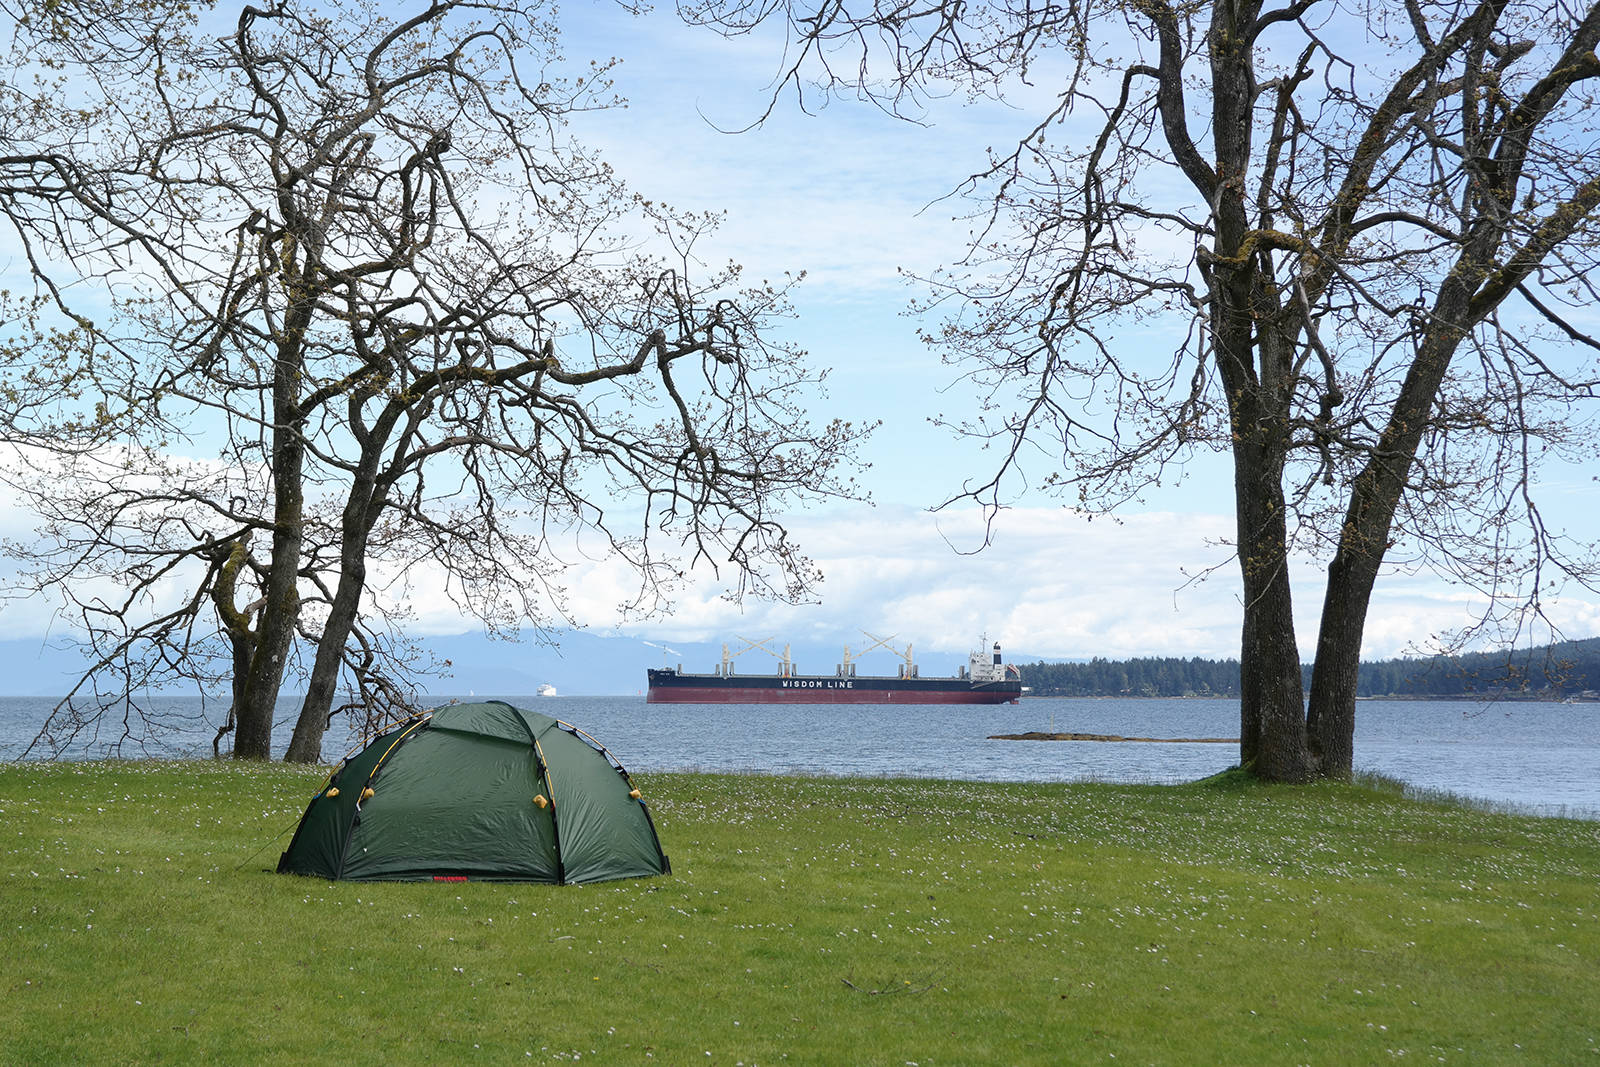 Overnight camping will be allowed as of June 1 in provincial parks such as Saysutshun Newcastle Island in Nanaimo. Provincial parks opened for hiking and other day uses May 14 after being closed since April 8. (News Bulletin file photo)